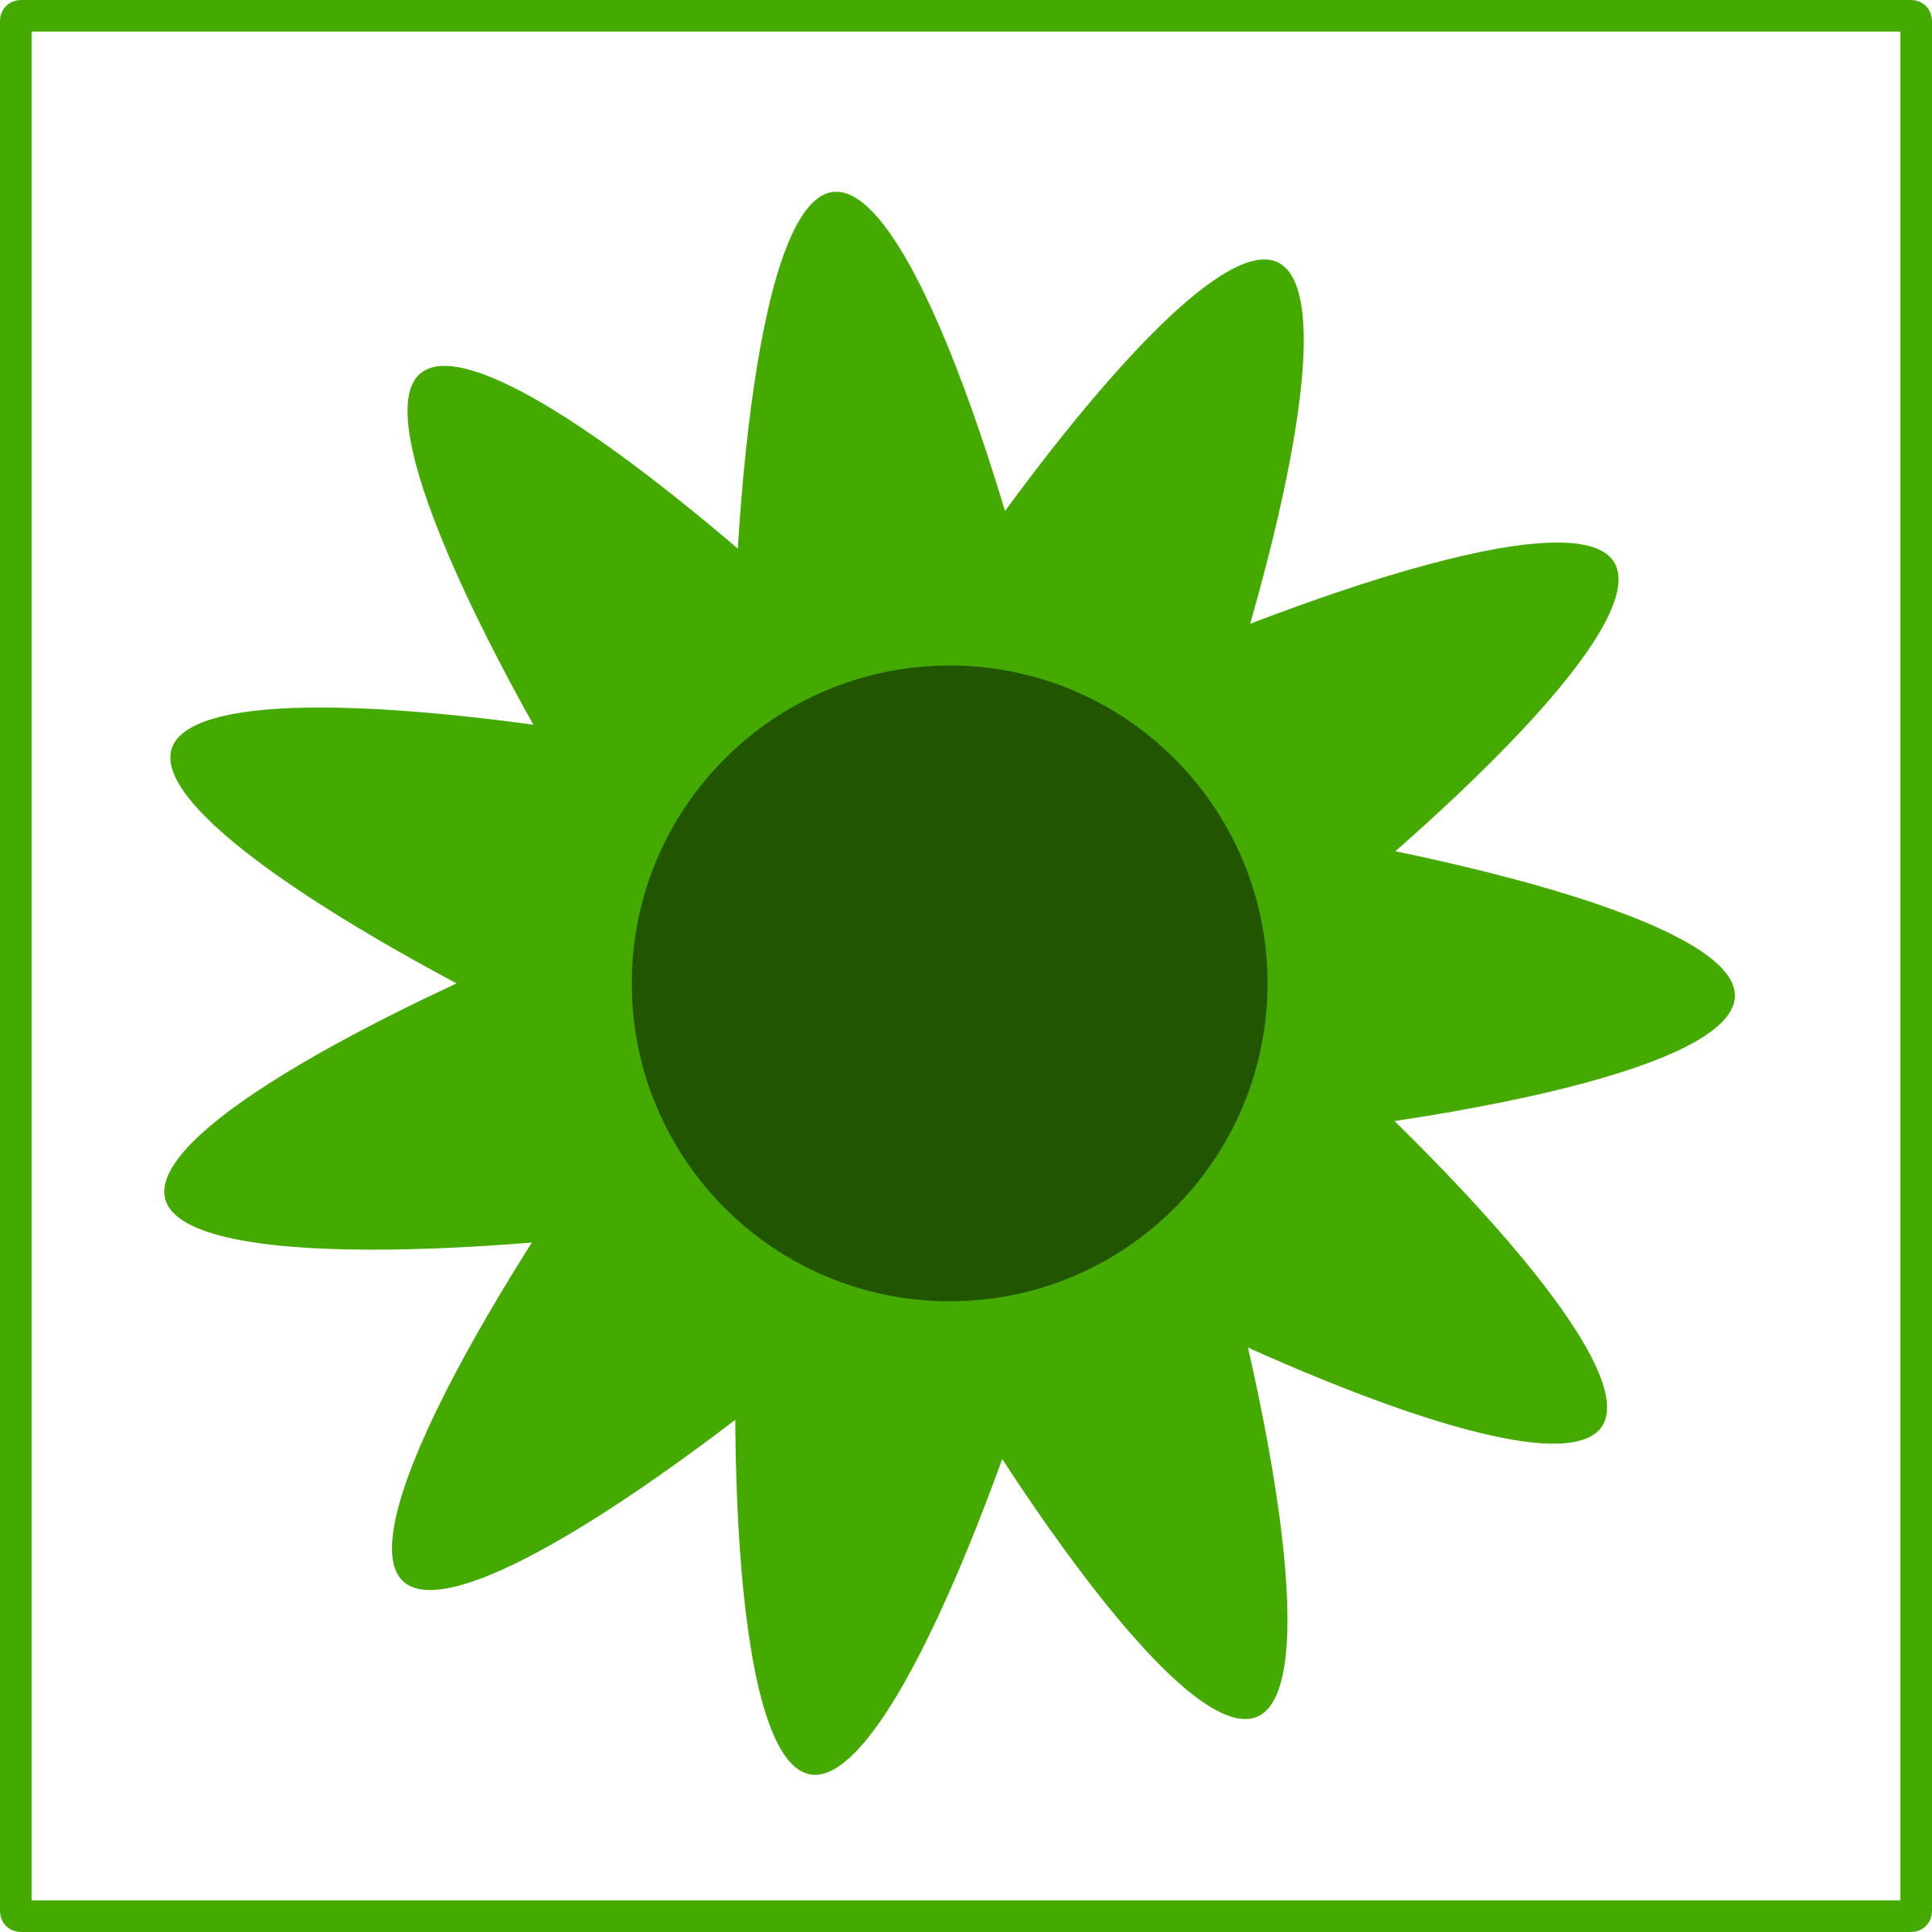 Green sun clipart image freeuse Clipart - eco green flower icon image freeuse